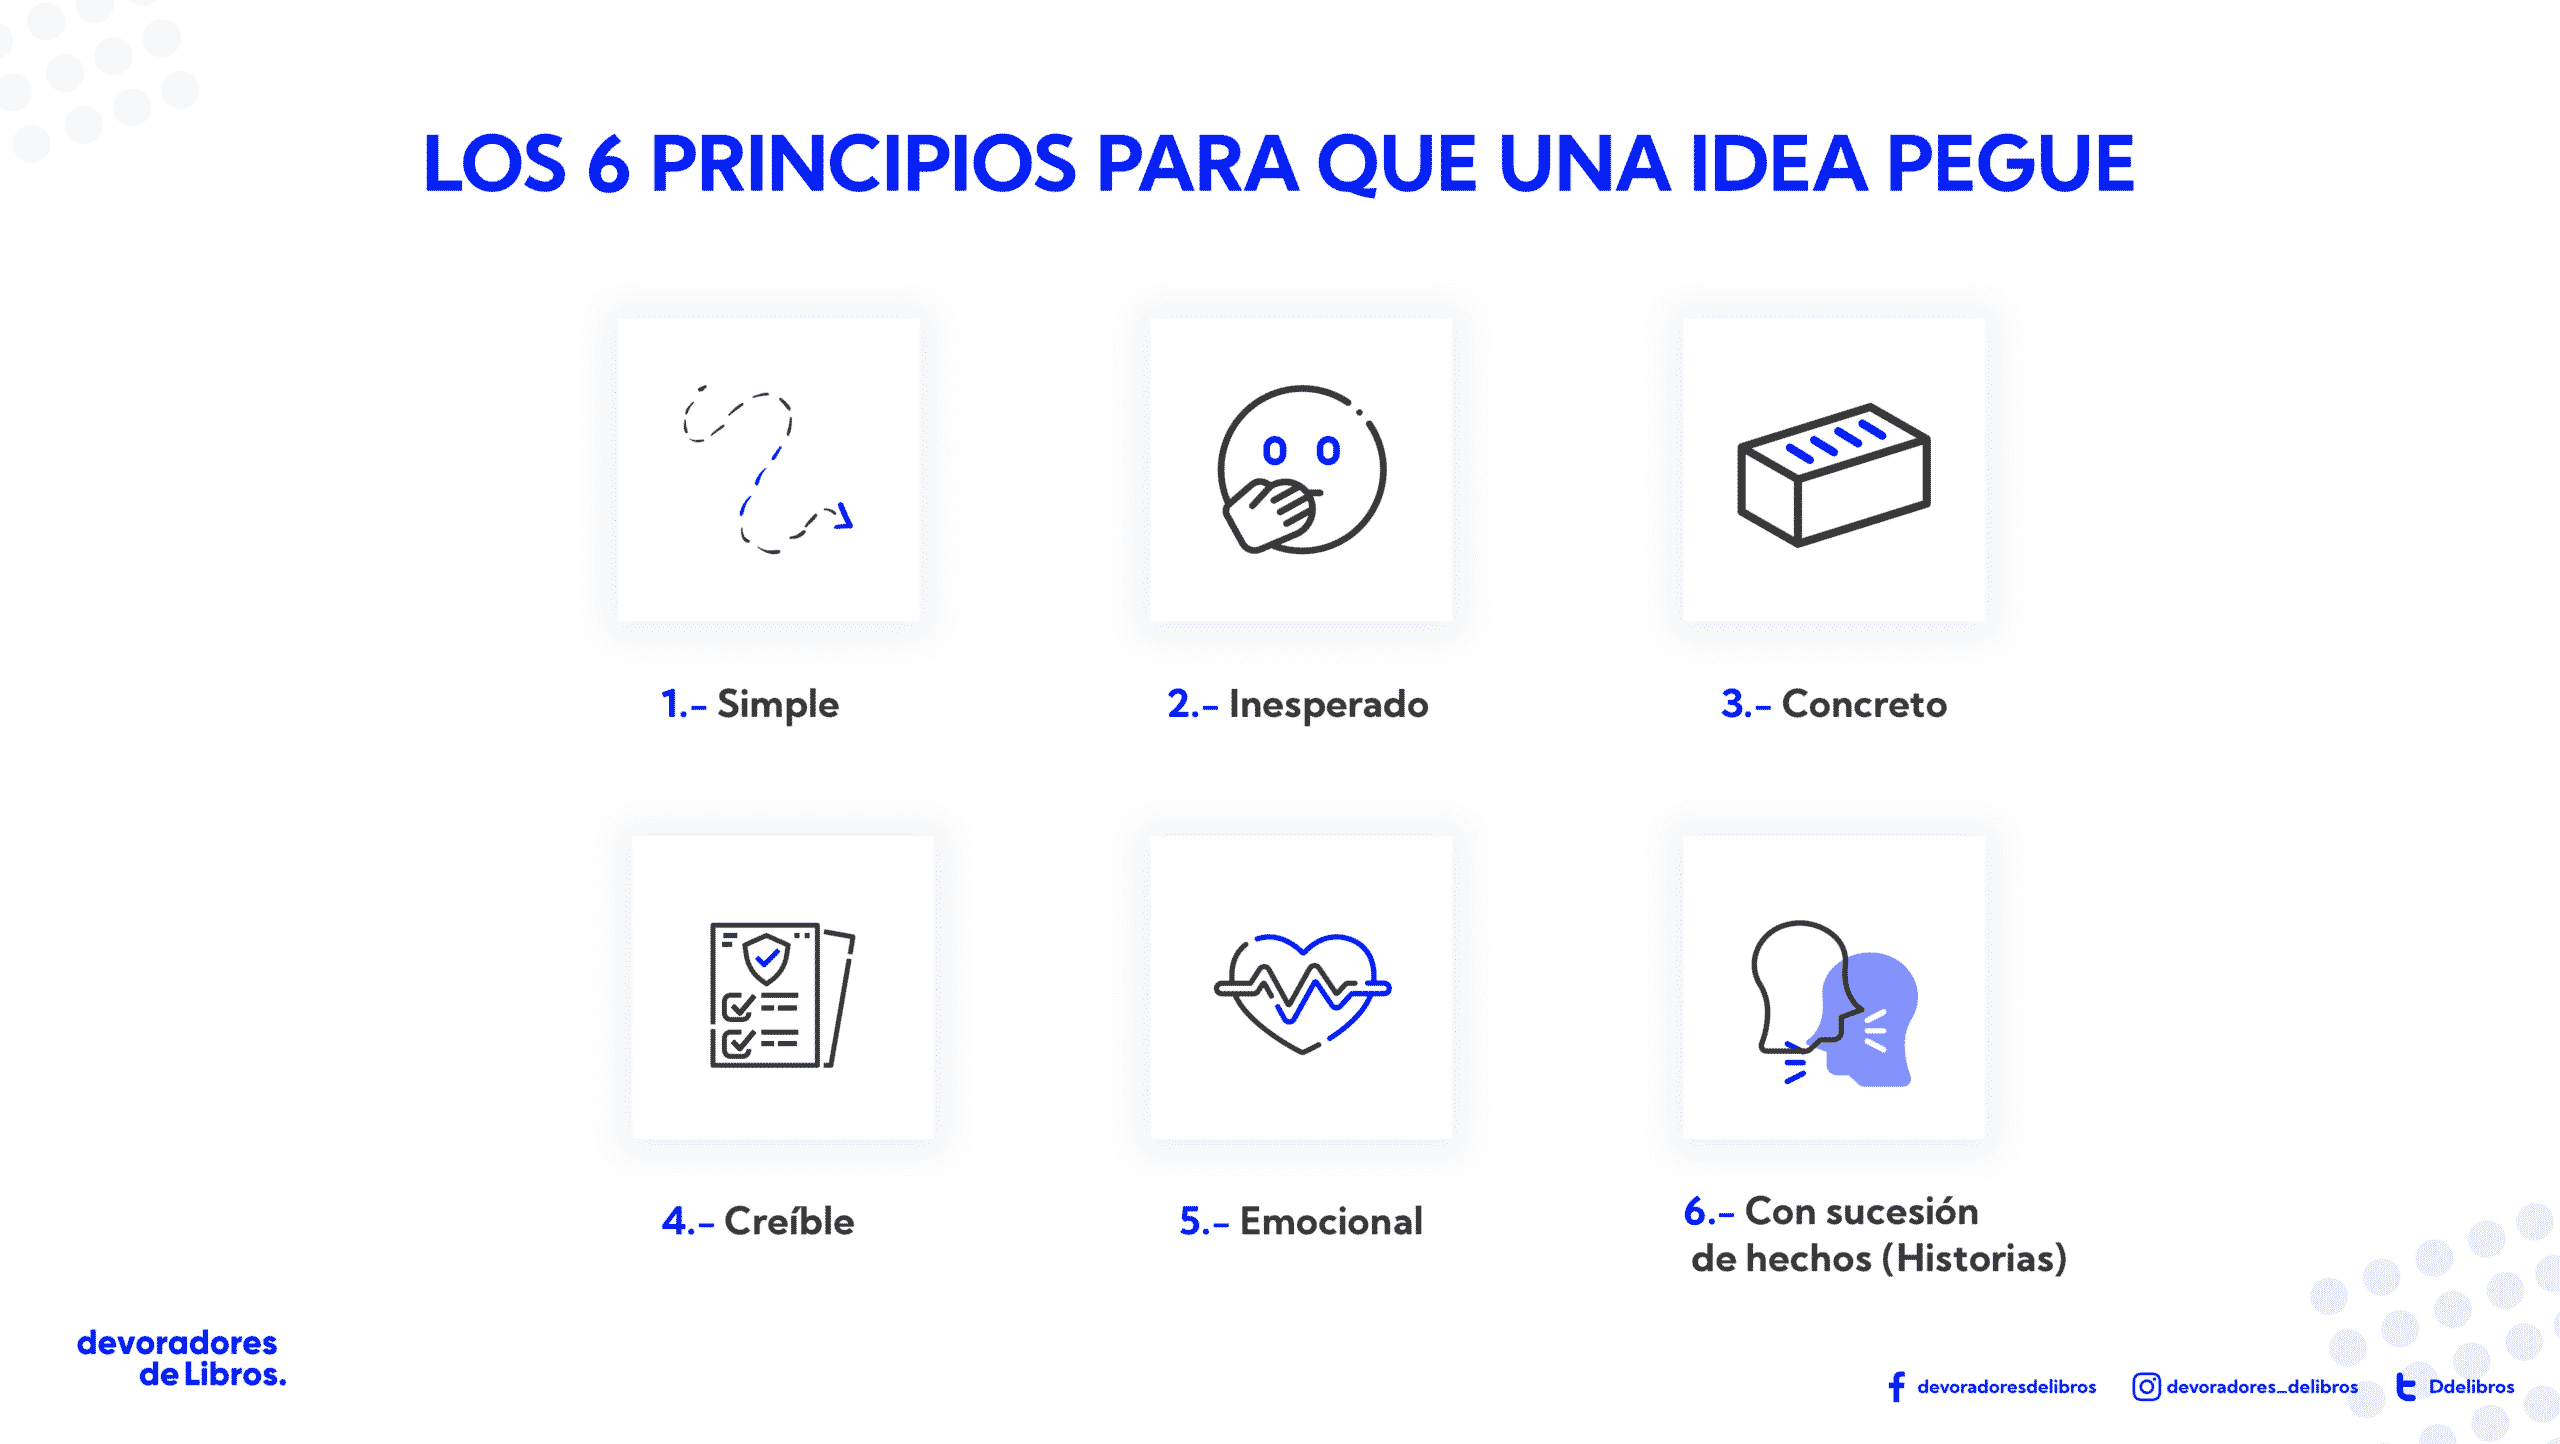 Ideas que pegan de Chip y Dan Heath: seis principios para que una idea pegue